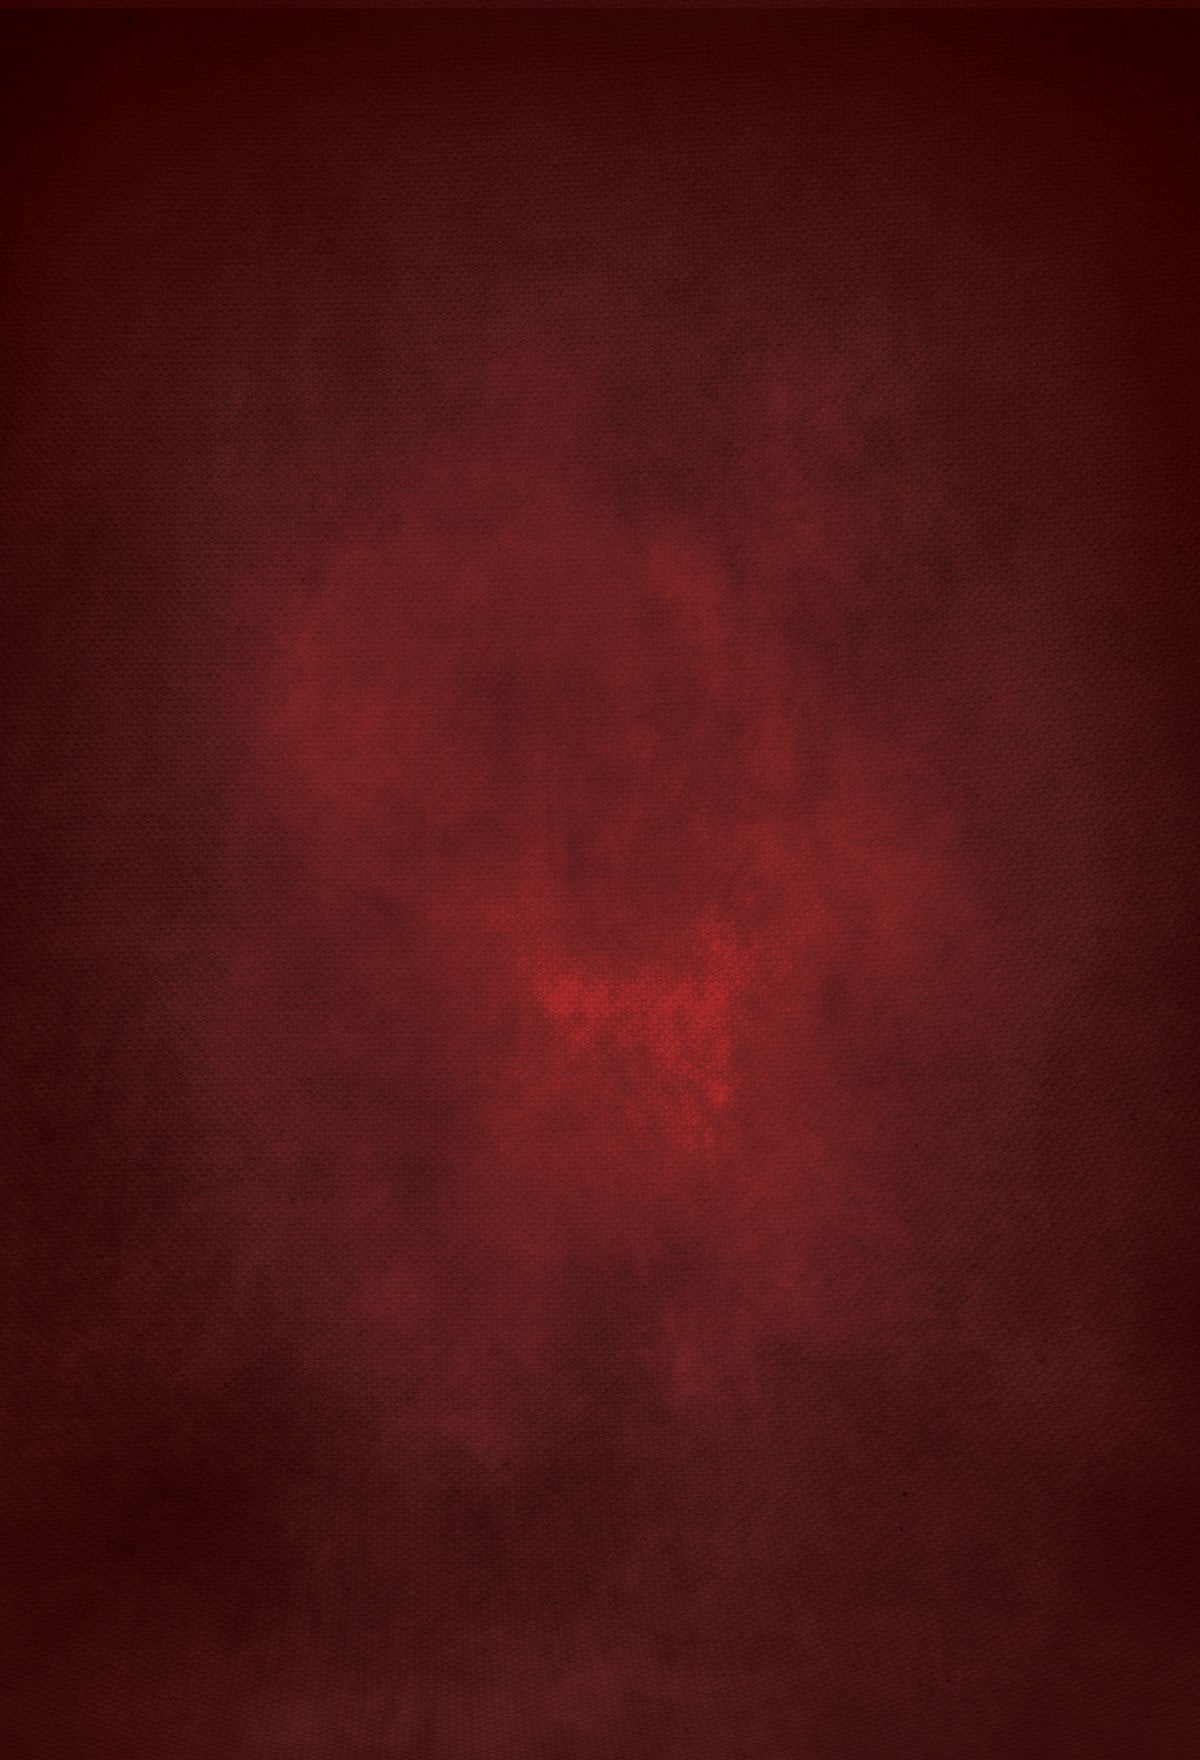 Load image into Gallery viewer, Kate Dark Red Wine Color Abstract Weave Pattern Texture Backdrop Designed by JFCC